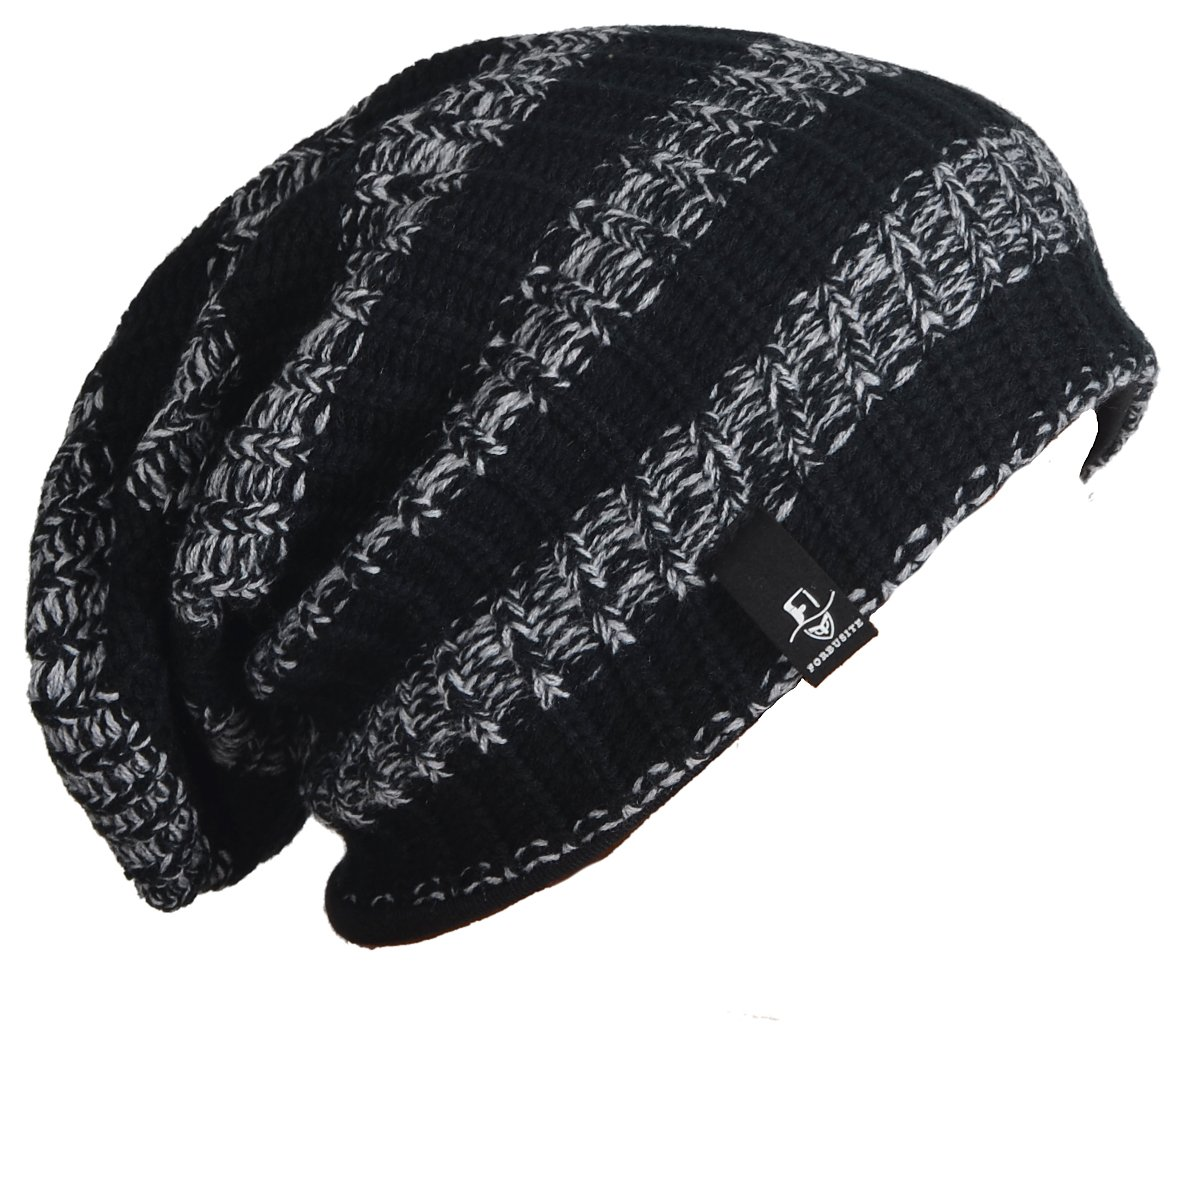 FORBUSITE Mens Slouchy Long Oversized Beanie Knit Cap for Summer Winter B08 B08-black-MD